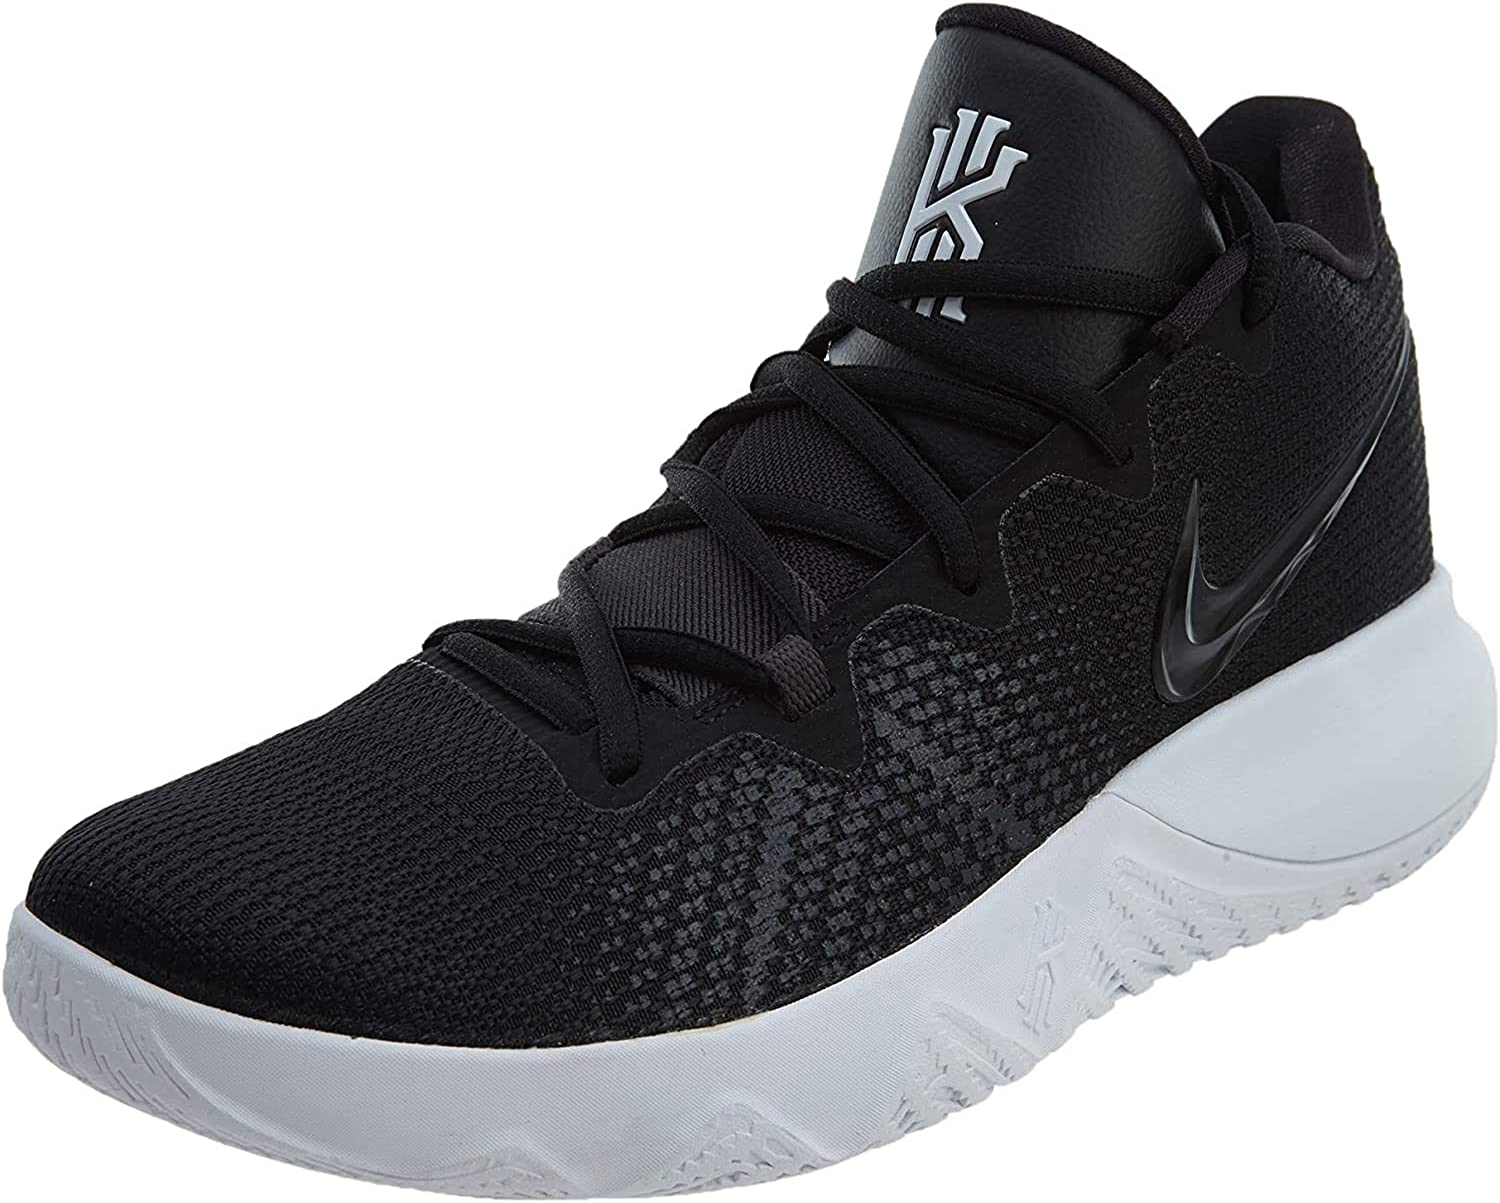 Kyrie Flytrap Basketball Shoes